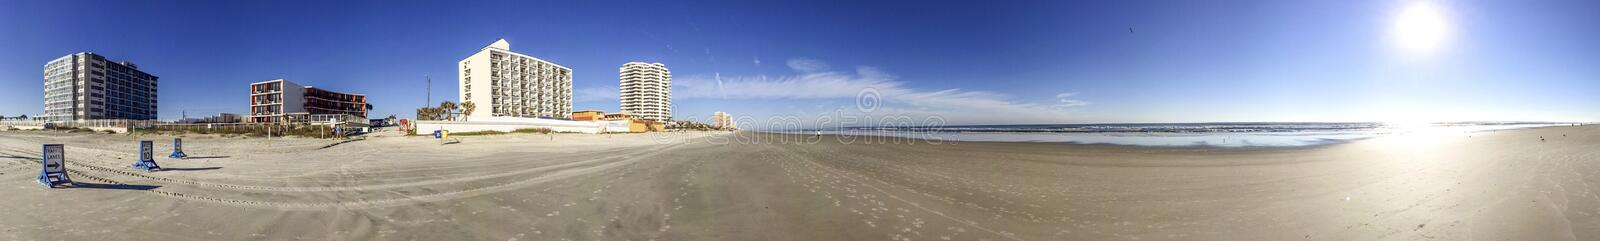 DAYTONA BEACH, FL - FEBRUARY 2016: Tourists walk along city beach. The city is a major attraction in Florida.  stock images